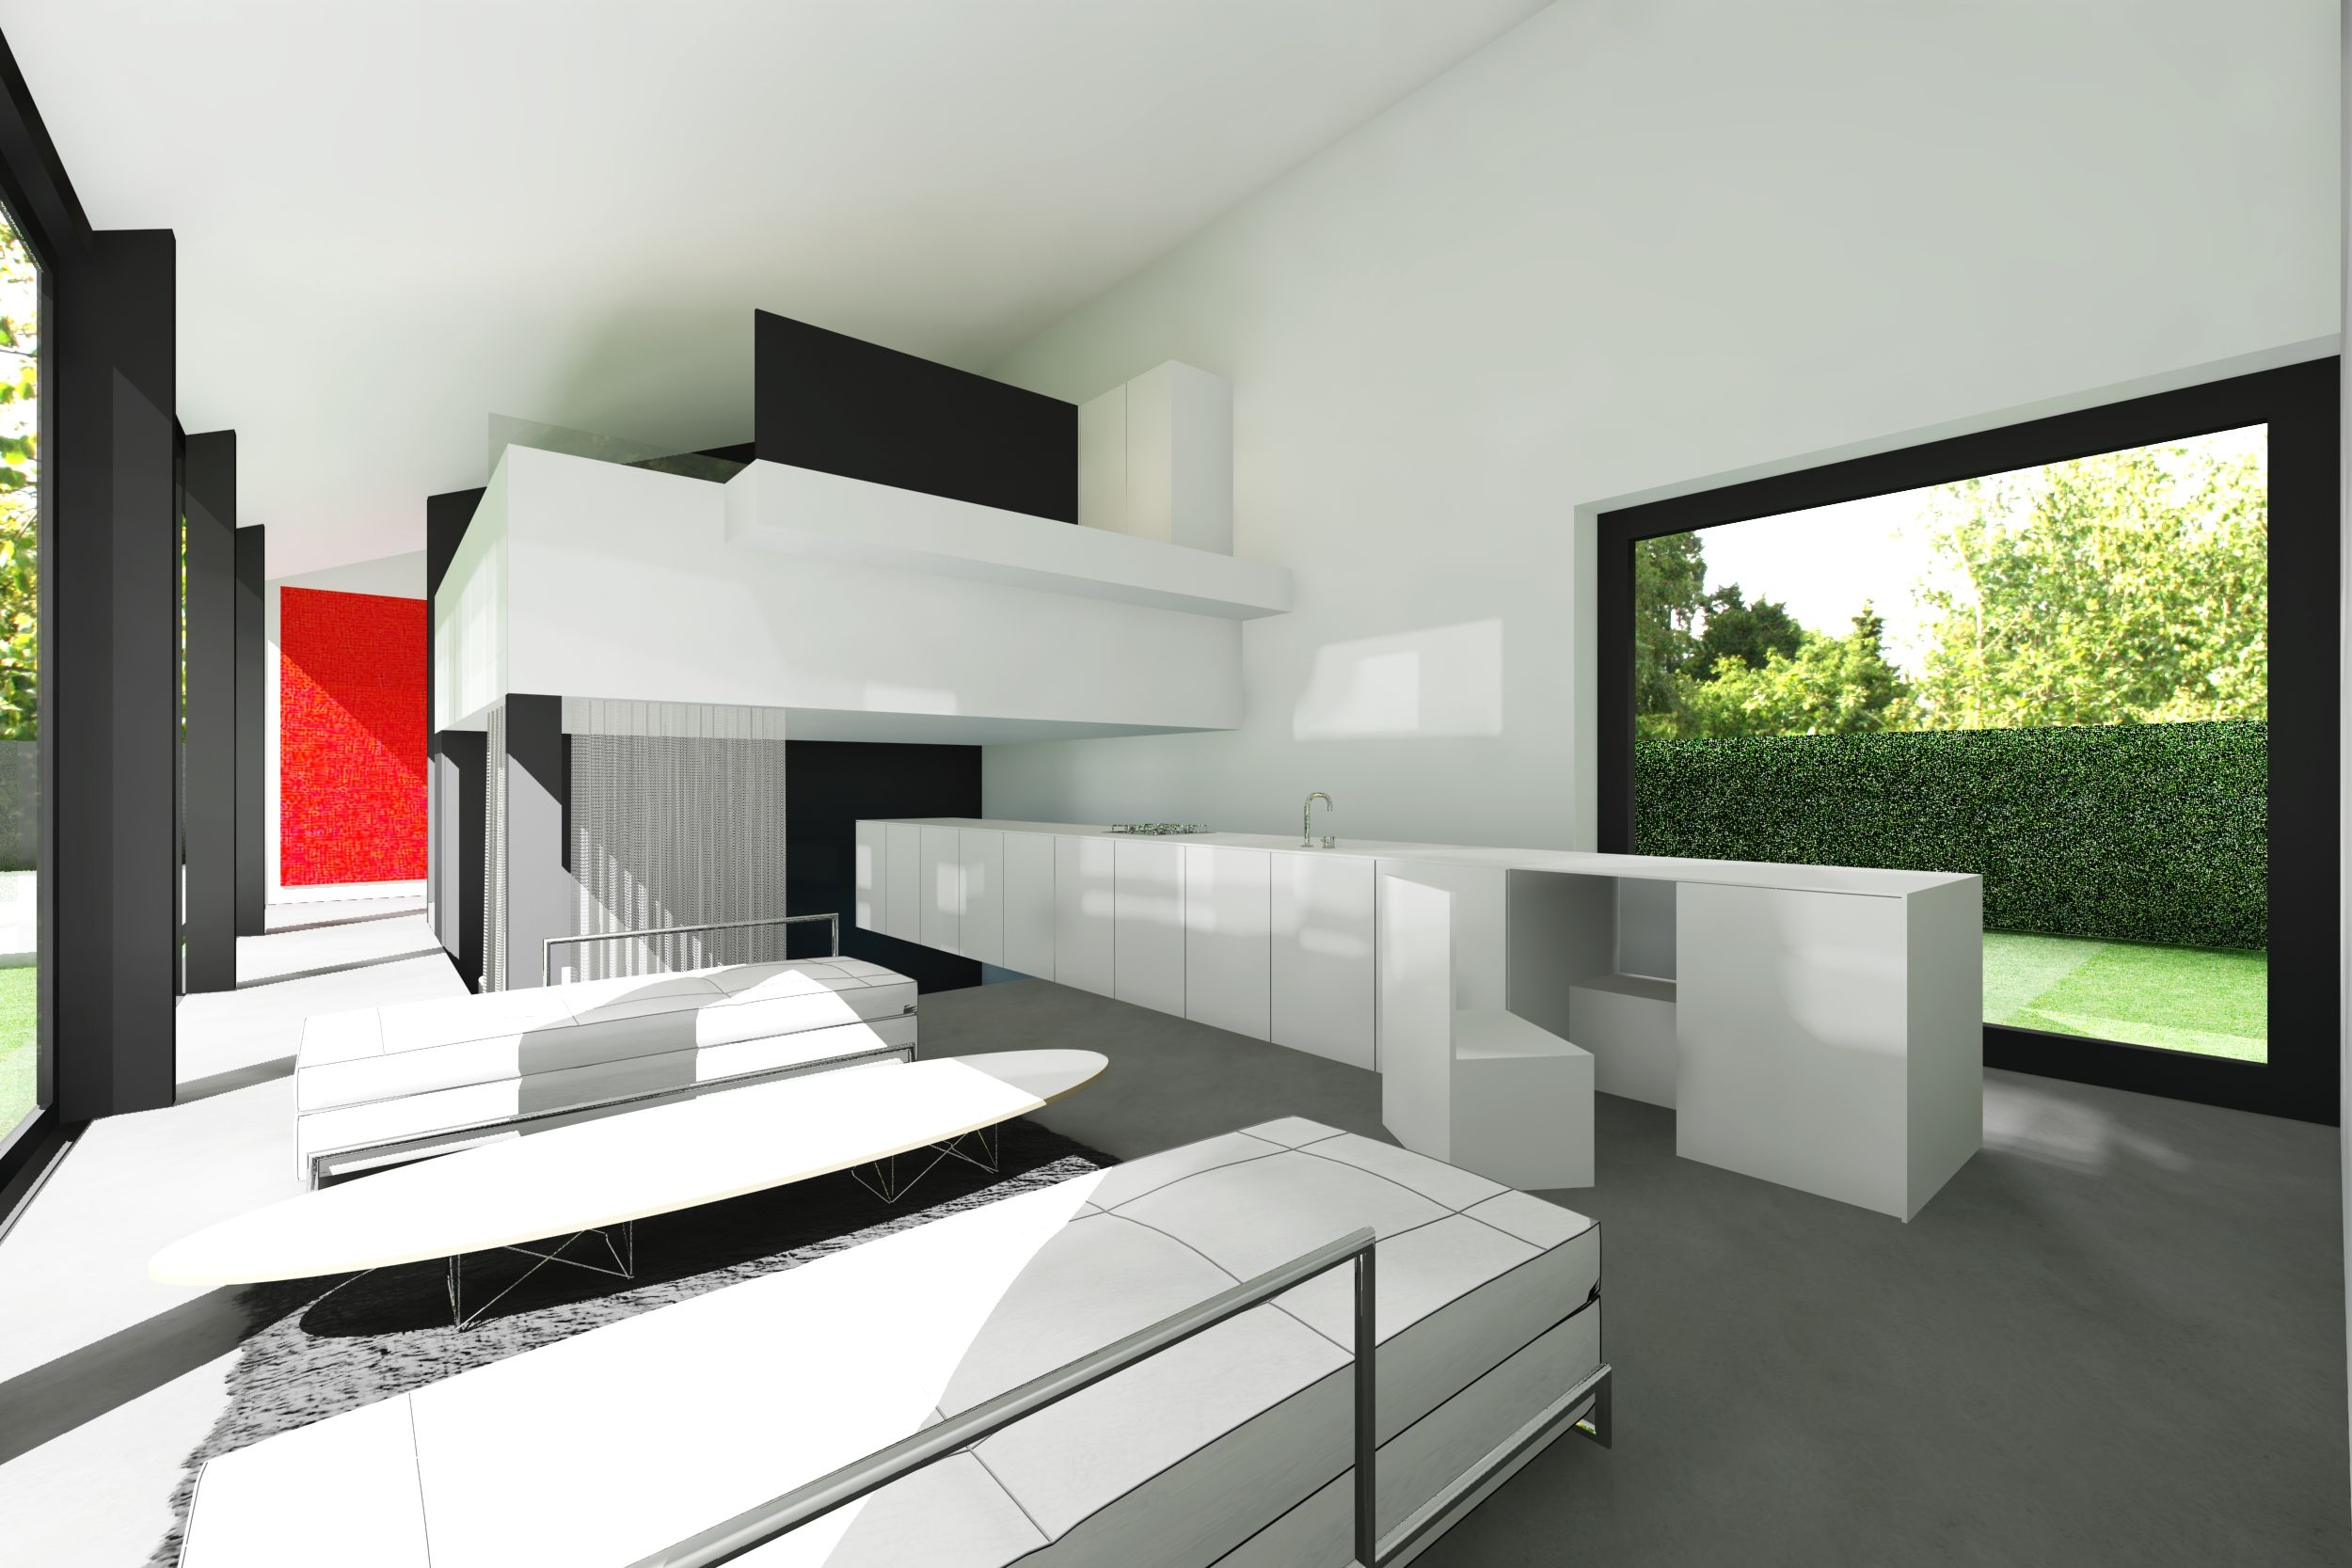 Icoon Be Architecten Minimalist Low Budget House Icoon Be